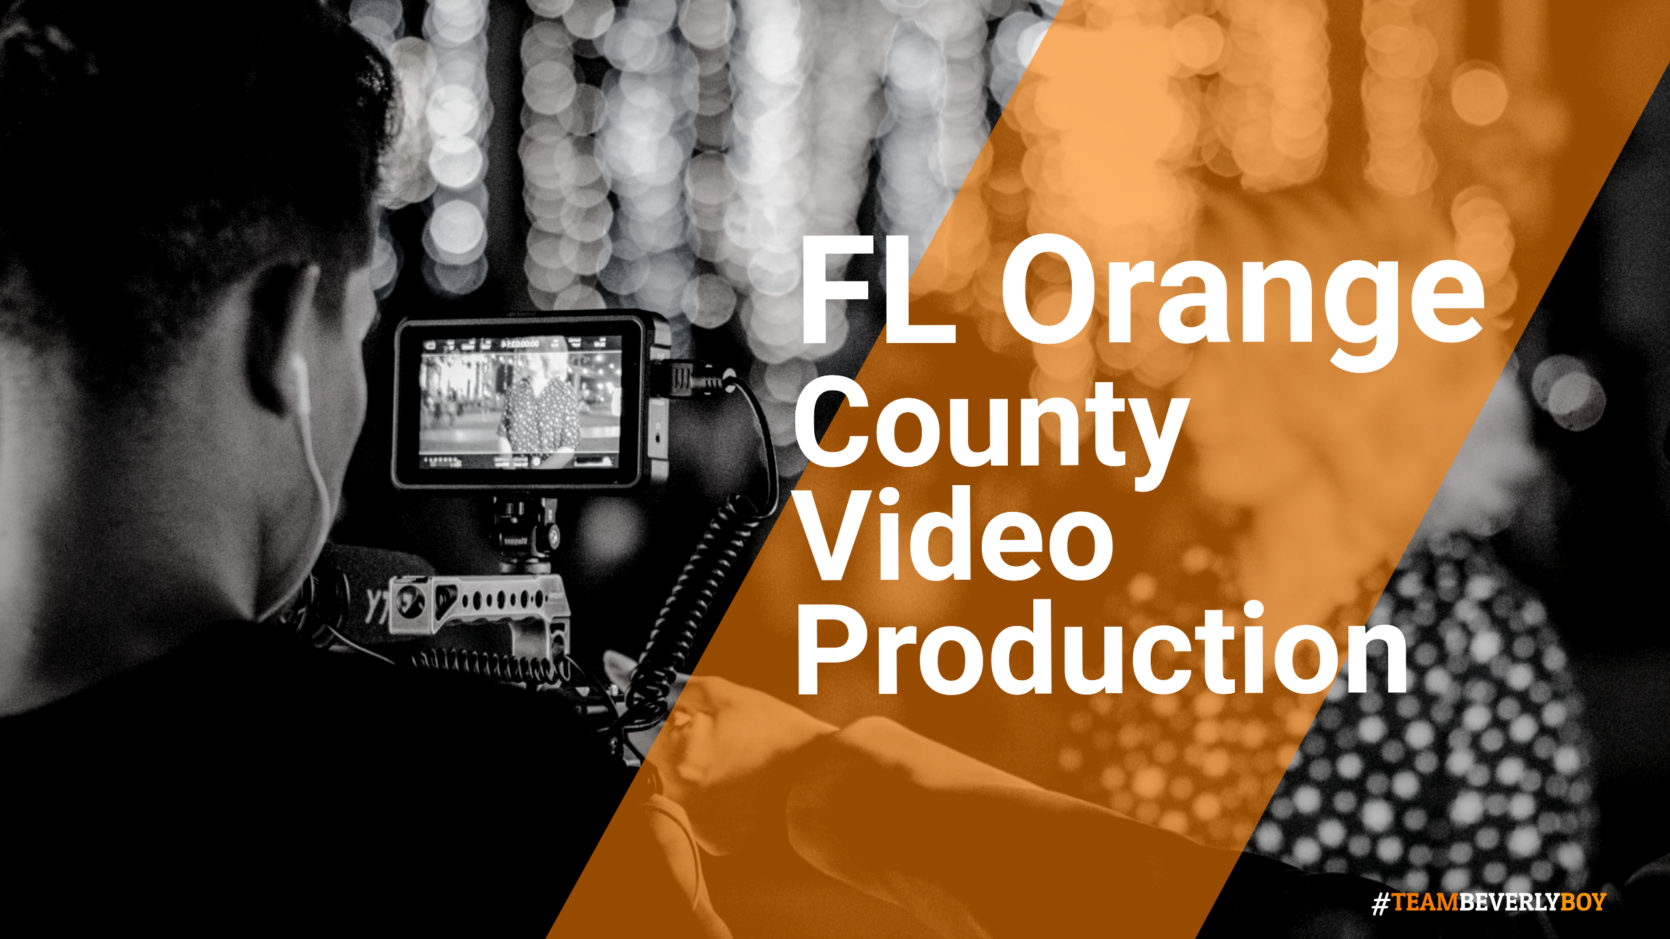 FL Orange county video production